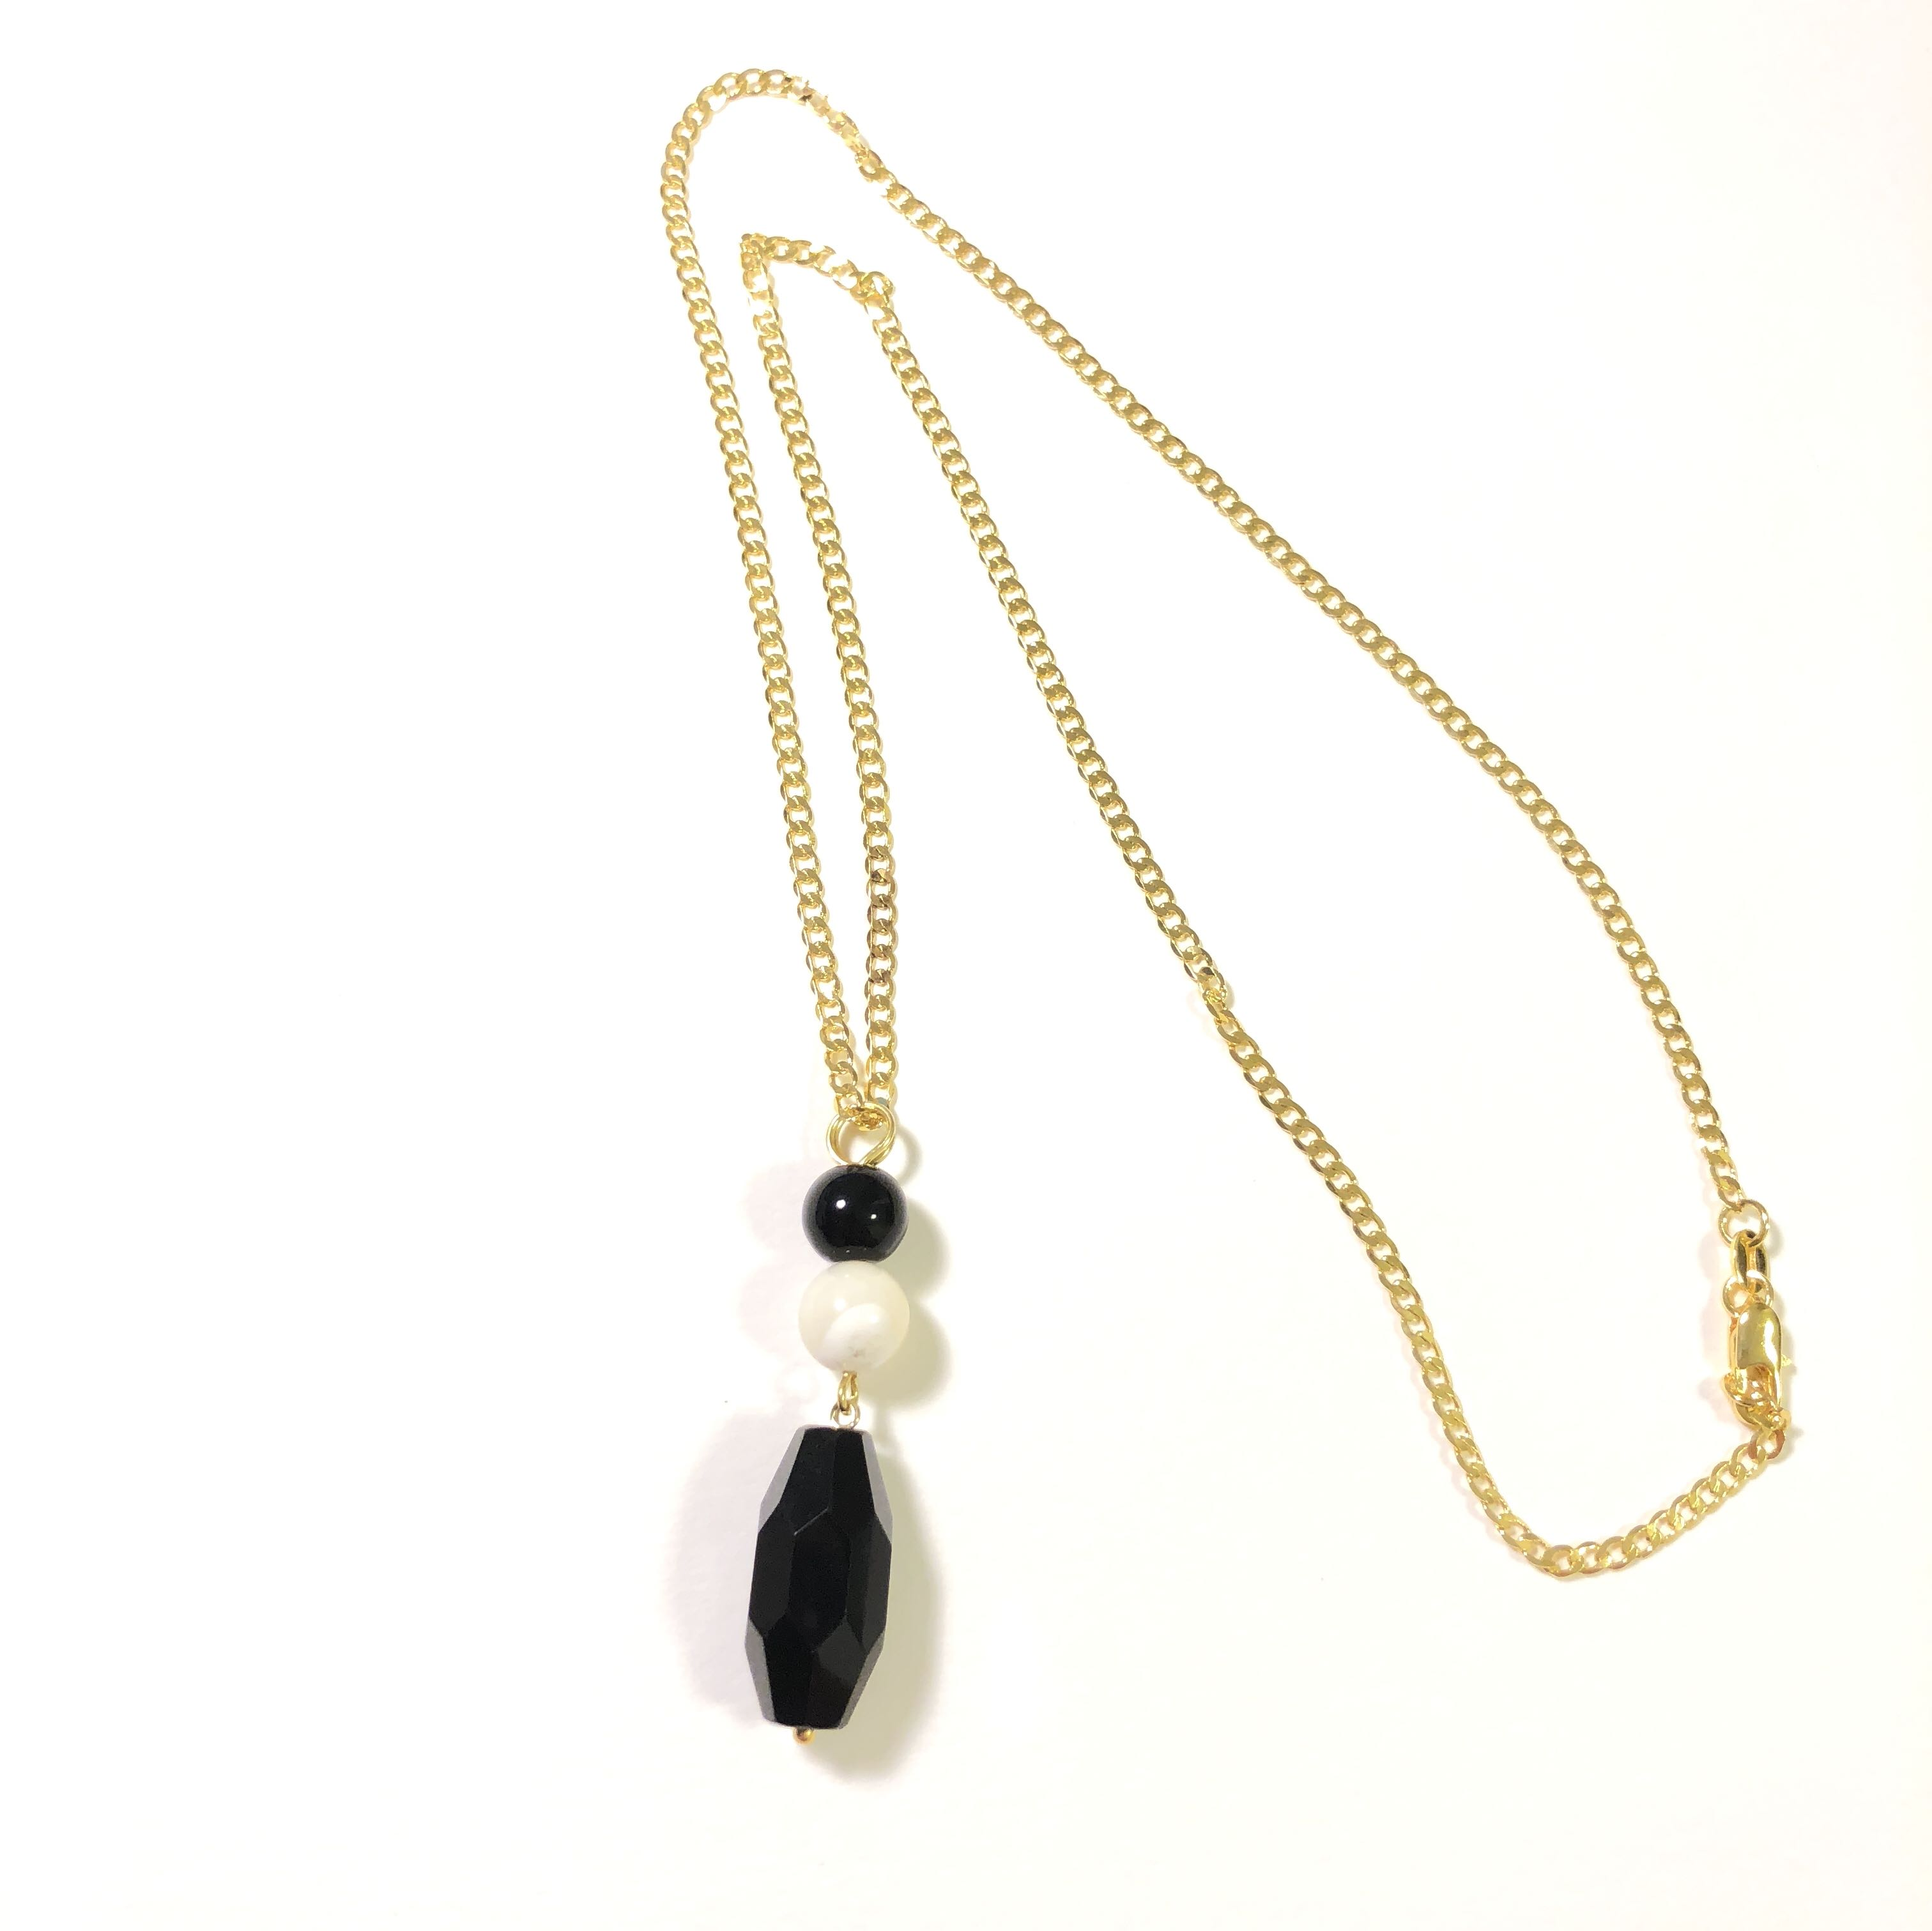 eebc5bebc1ad Black Jet with Mother of Pearl   Onyx Necklace